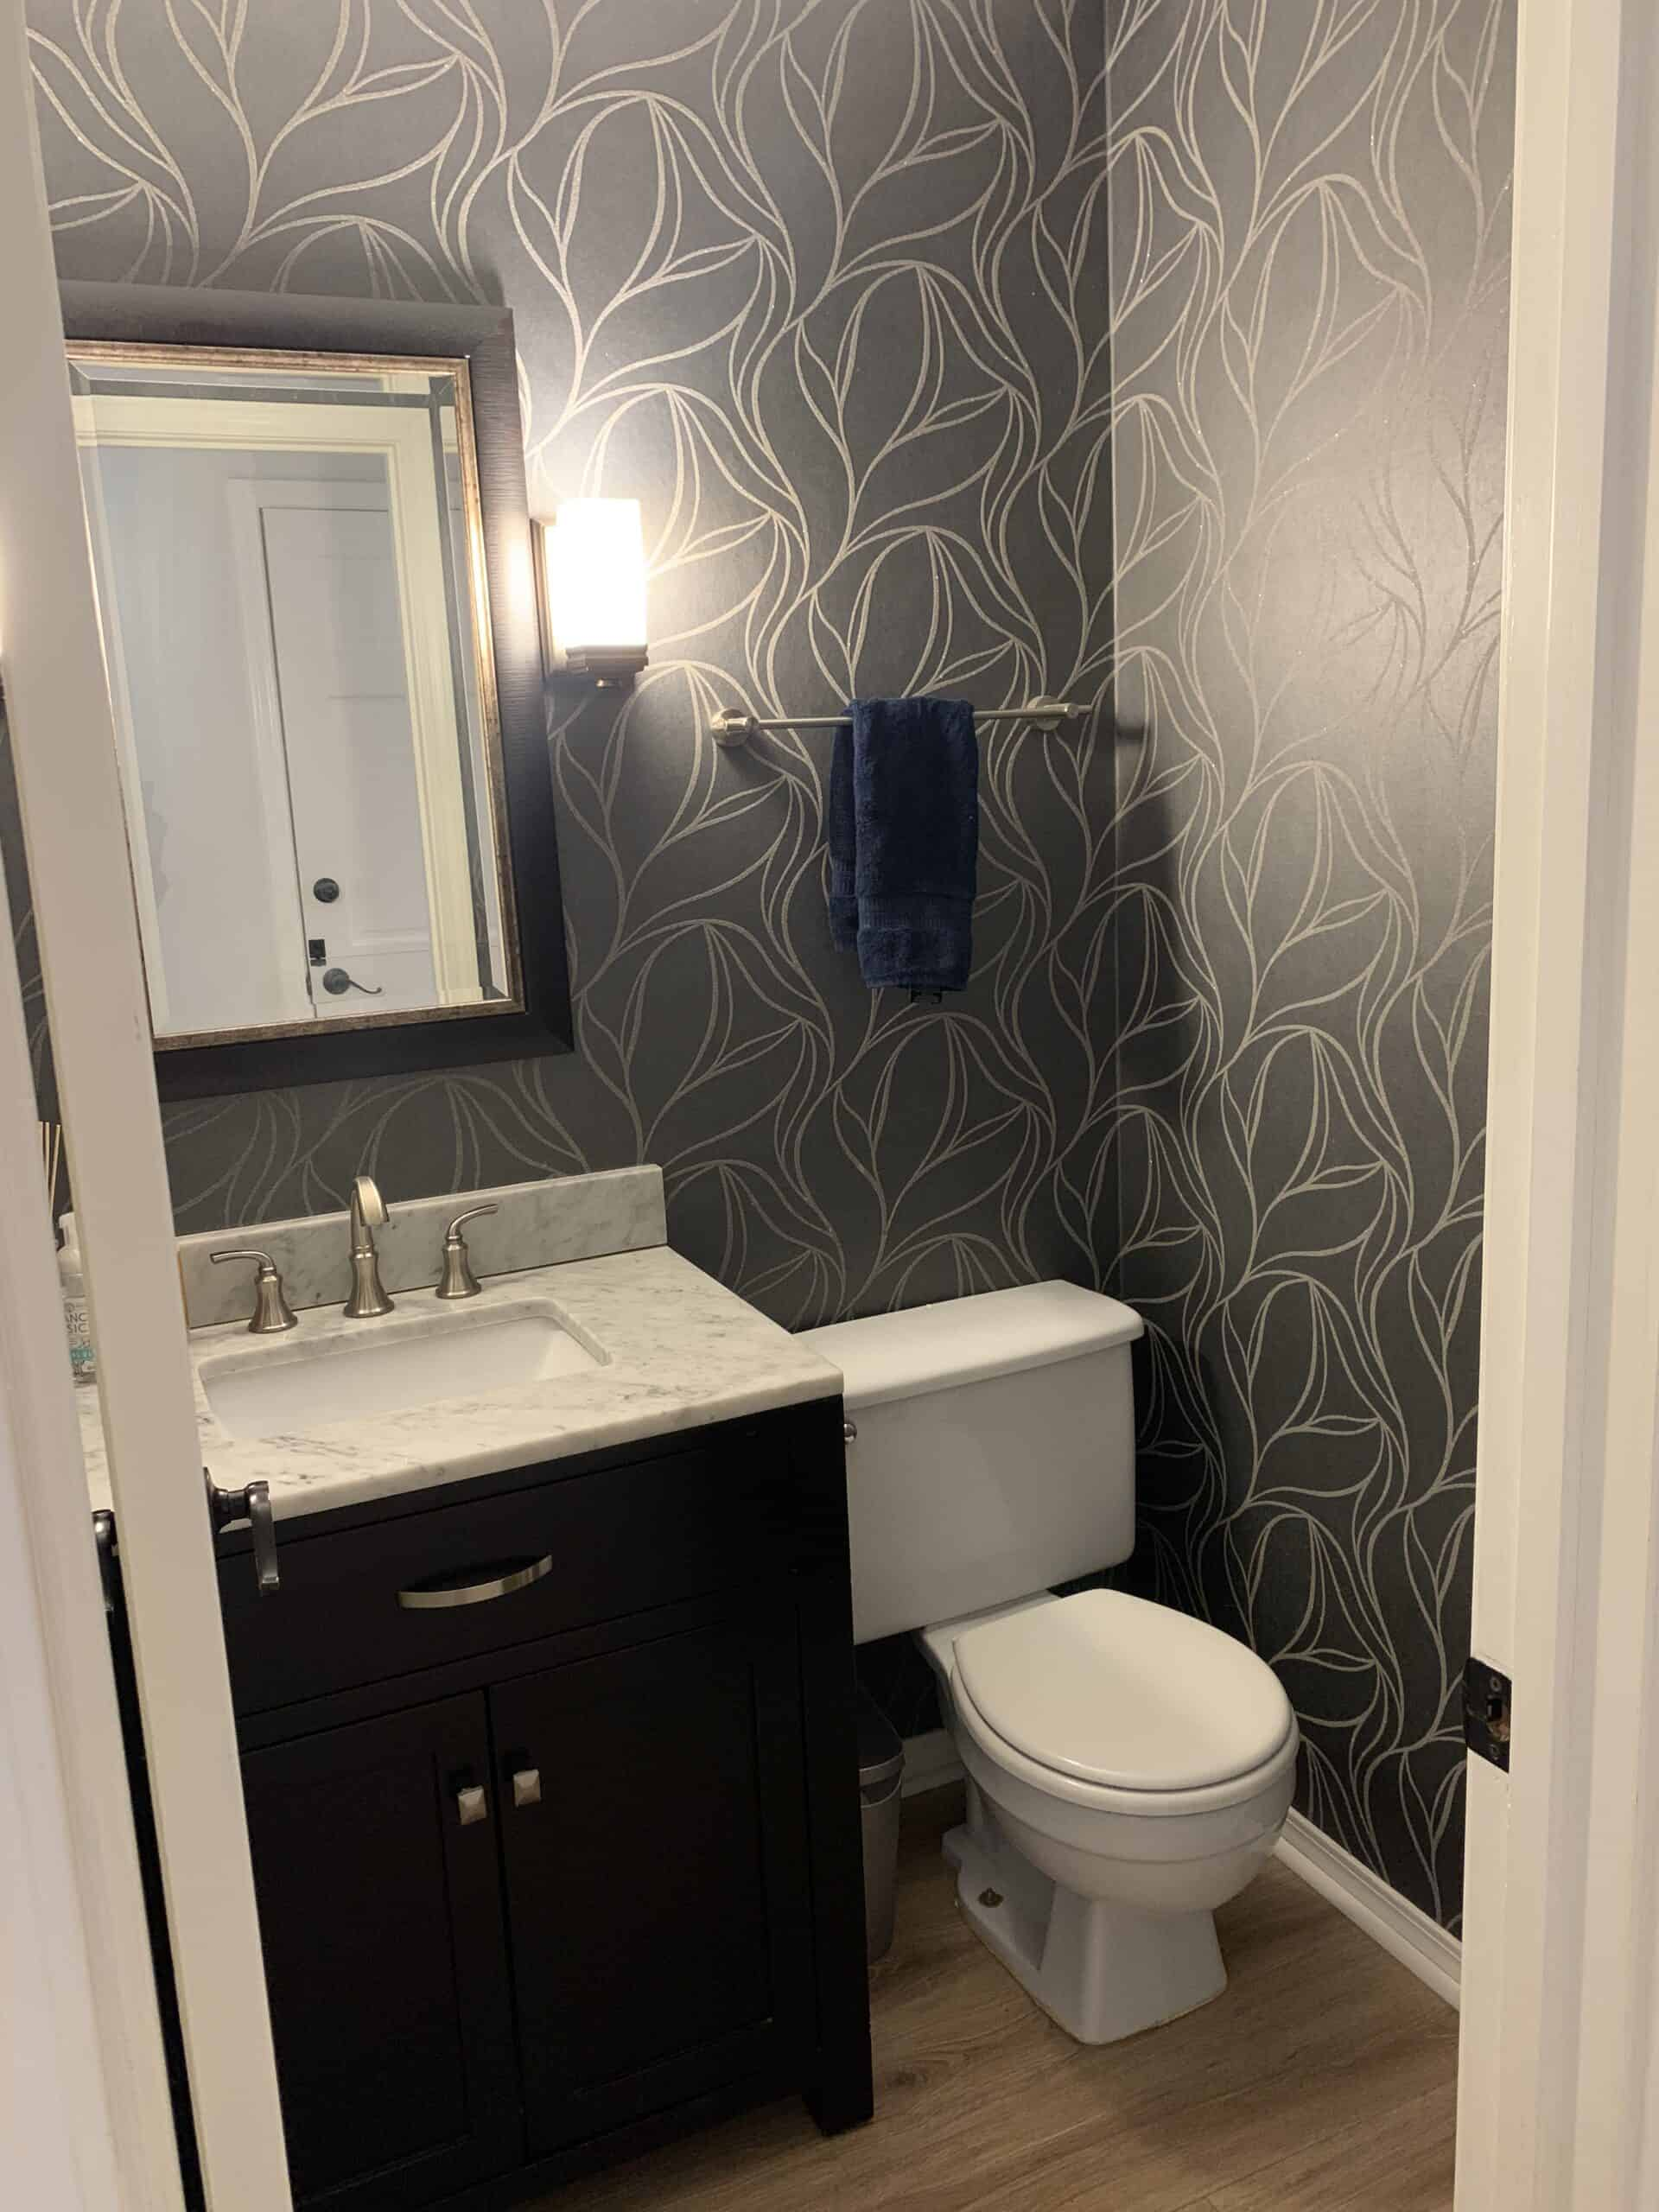 Powder room with navy blue and silver wallpaper